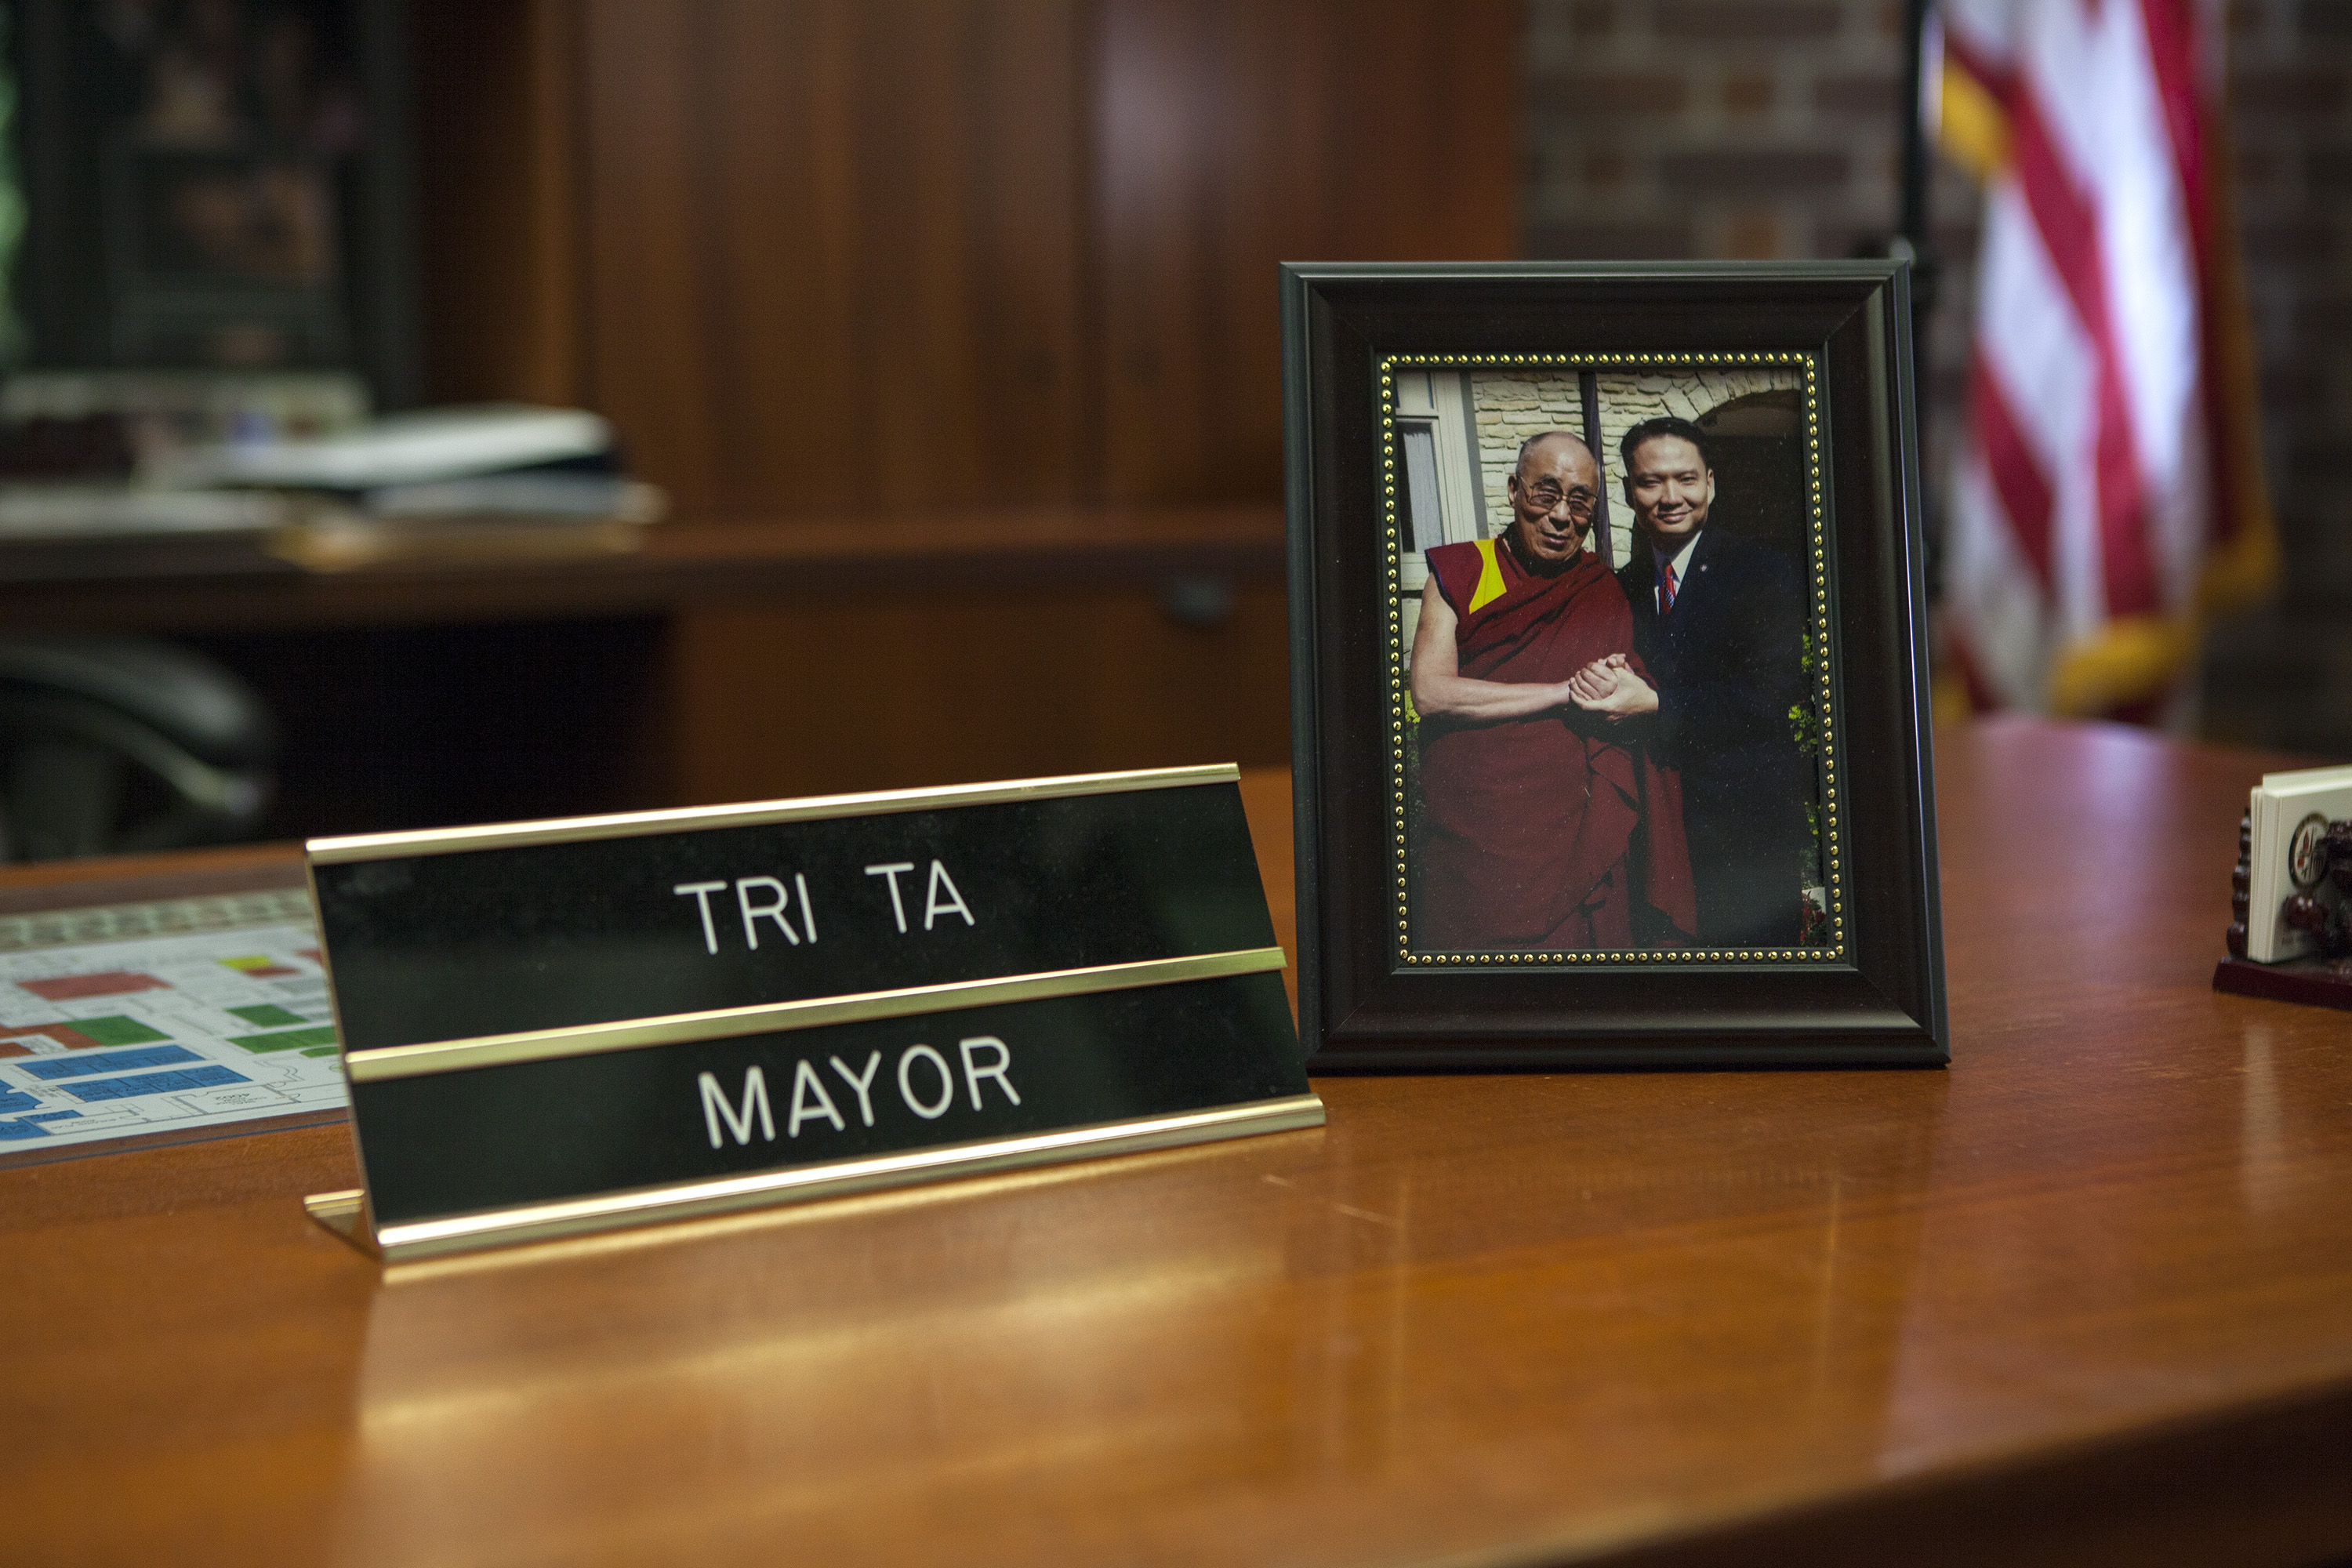 Mayor Tri Ta of Westminster, California